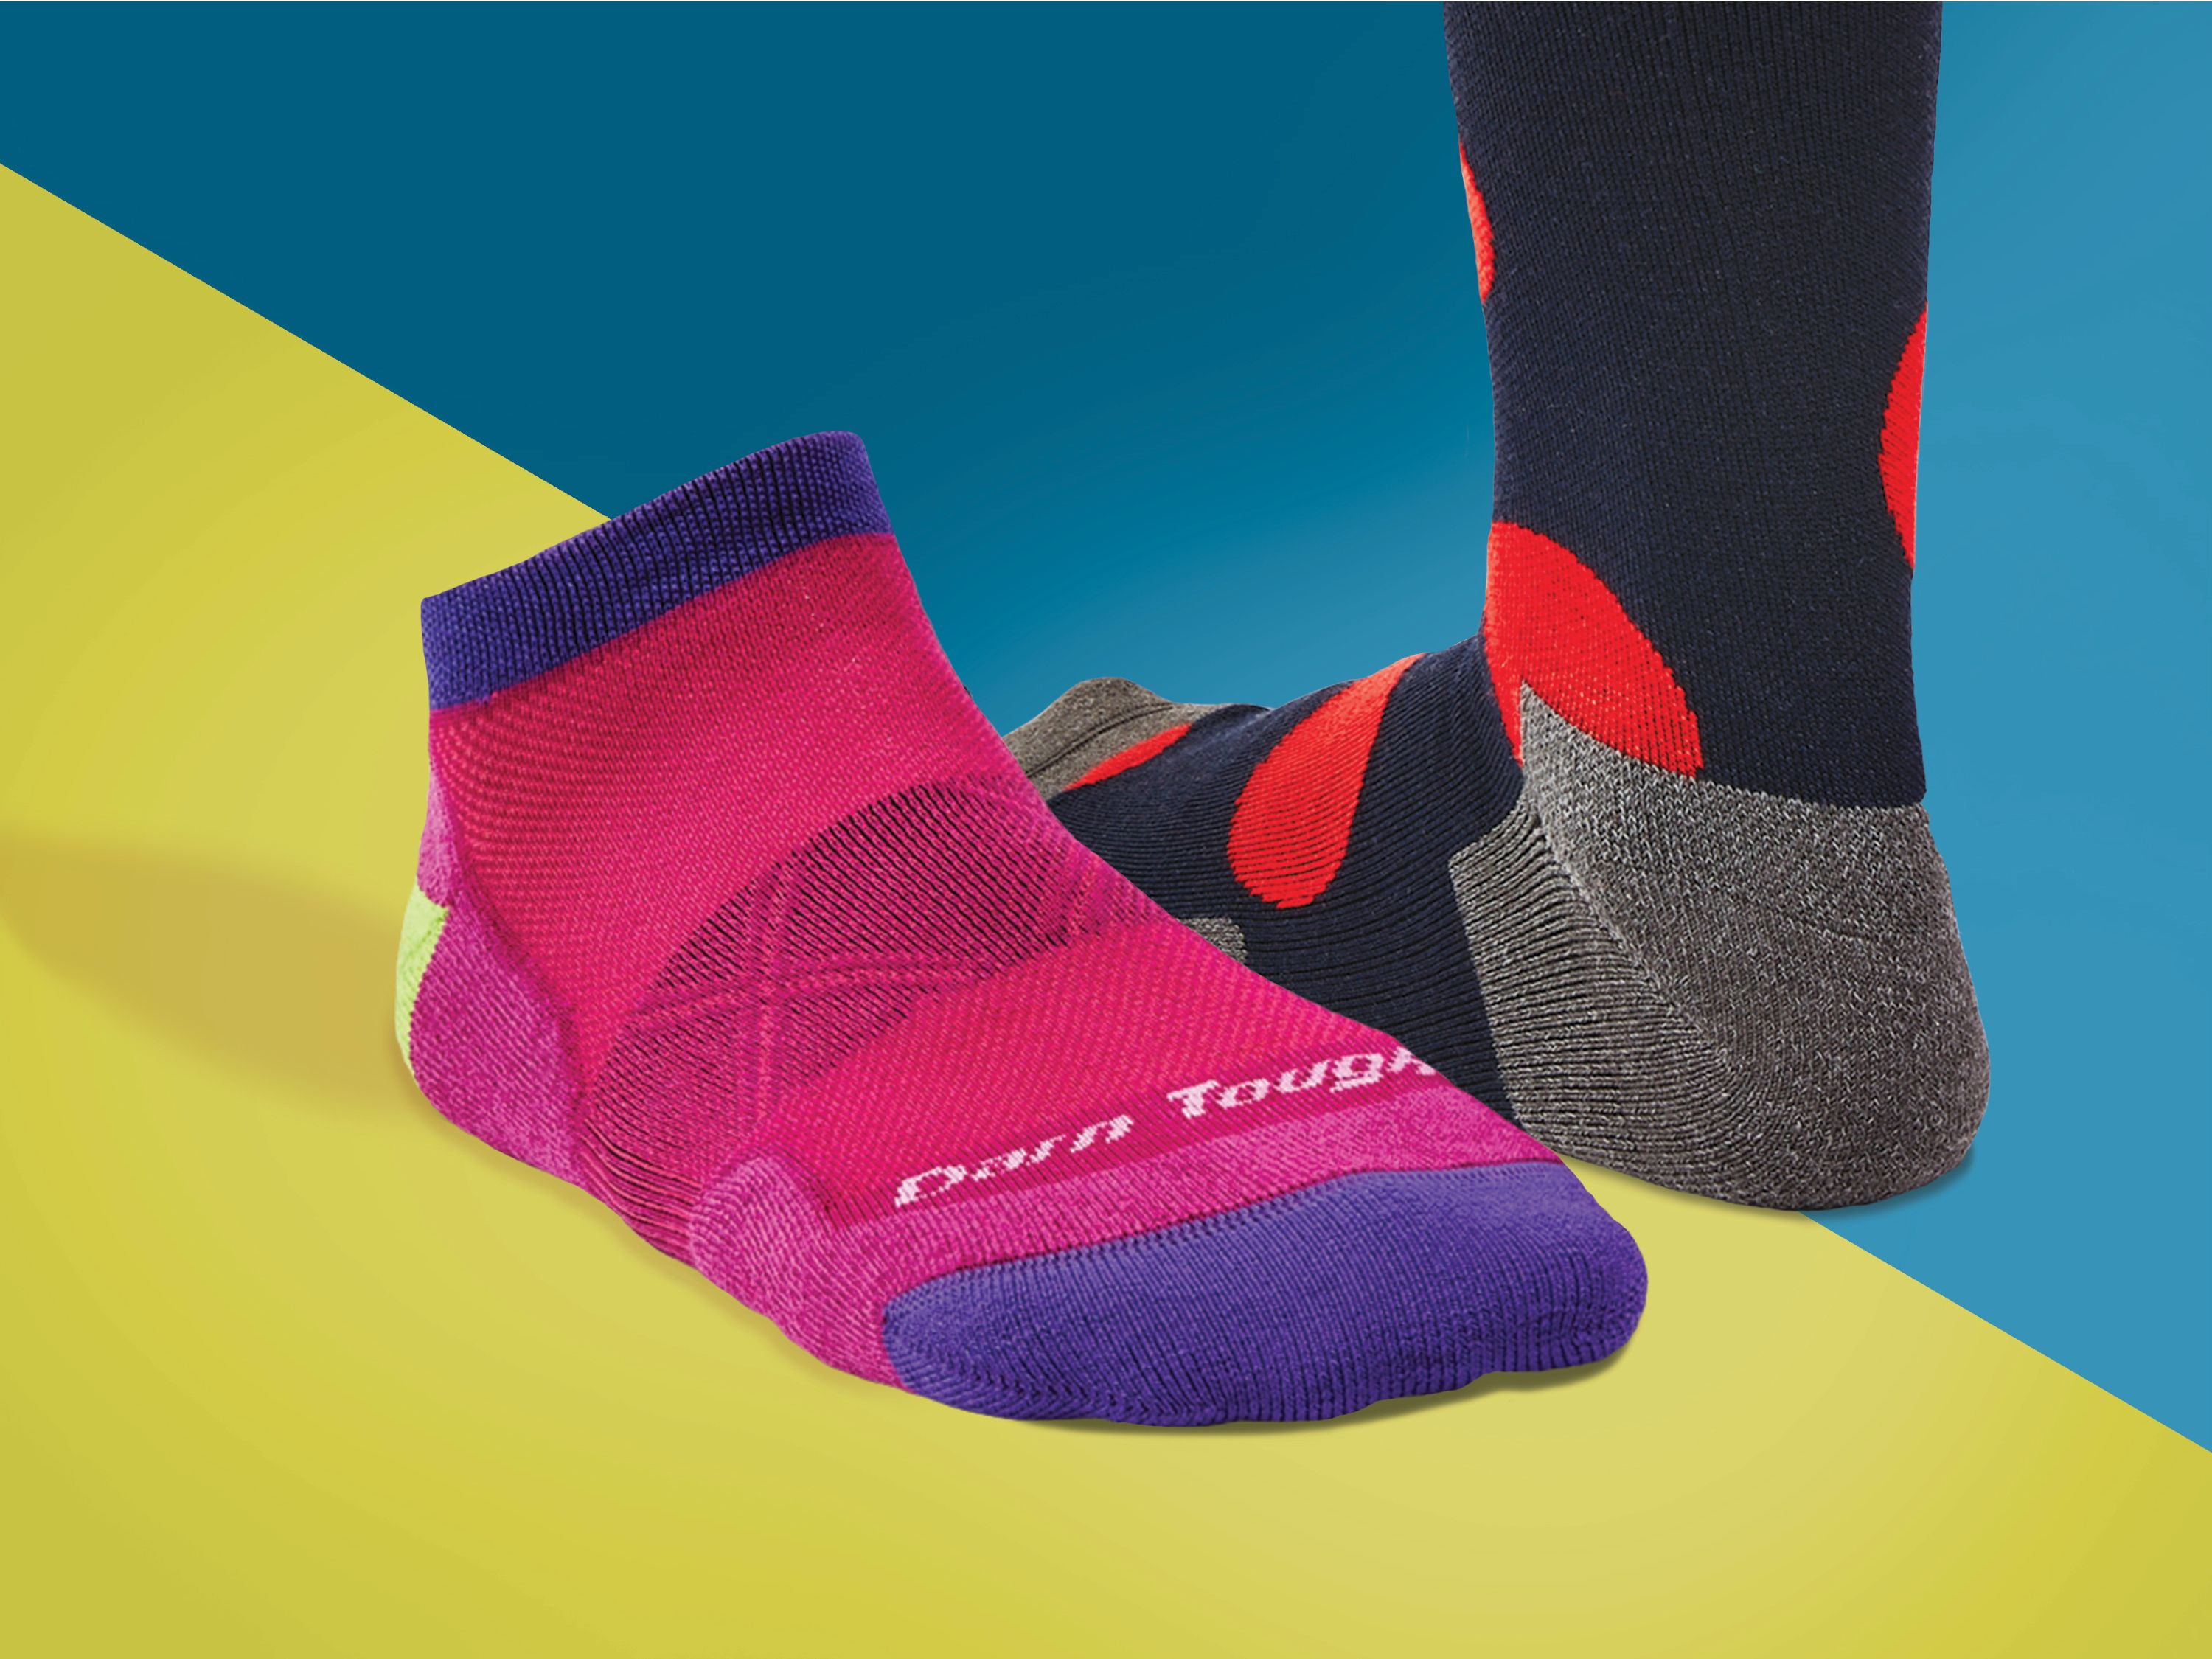 0c87c36a62f Best Running Socks - Most Comfortable Socks 2019